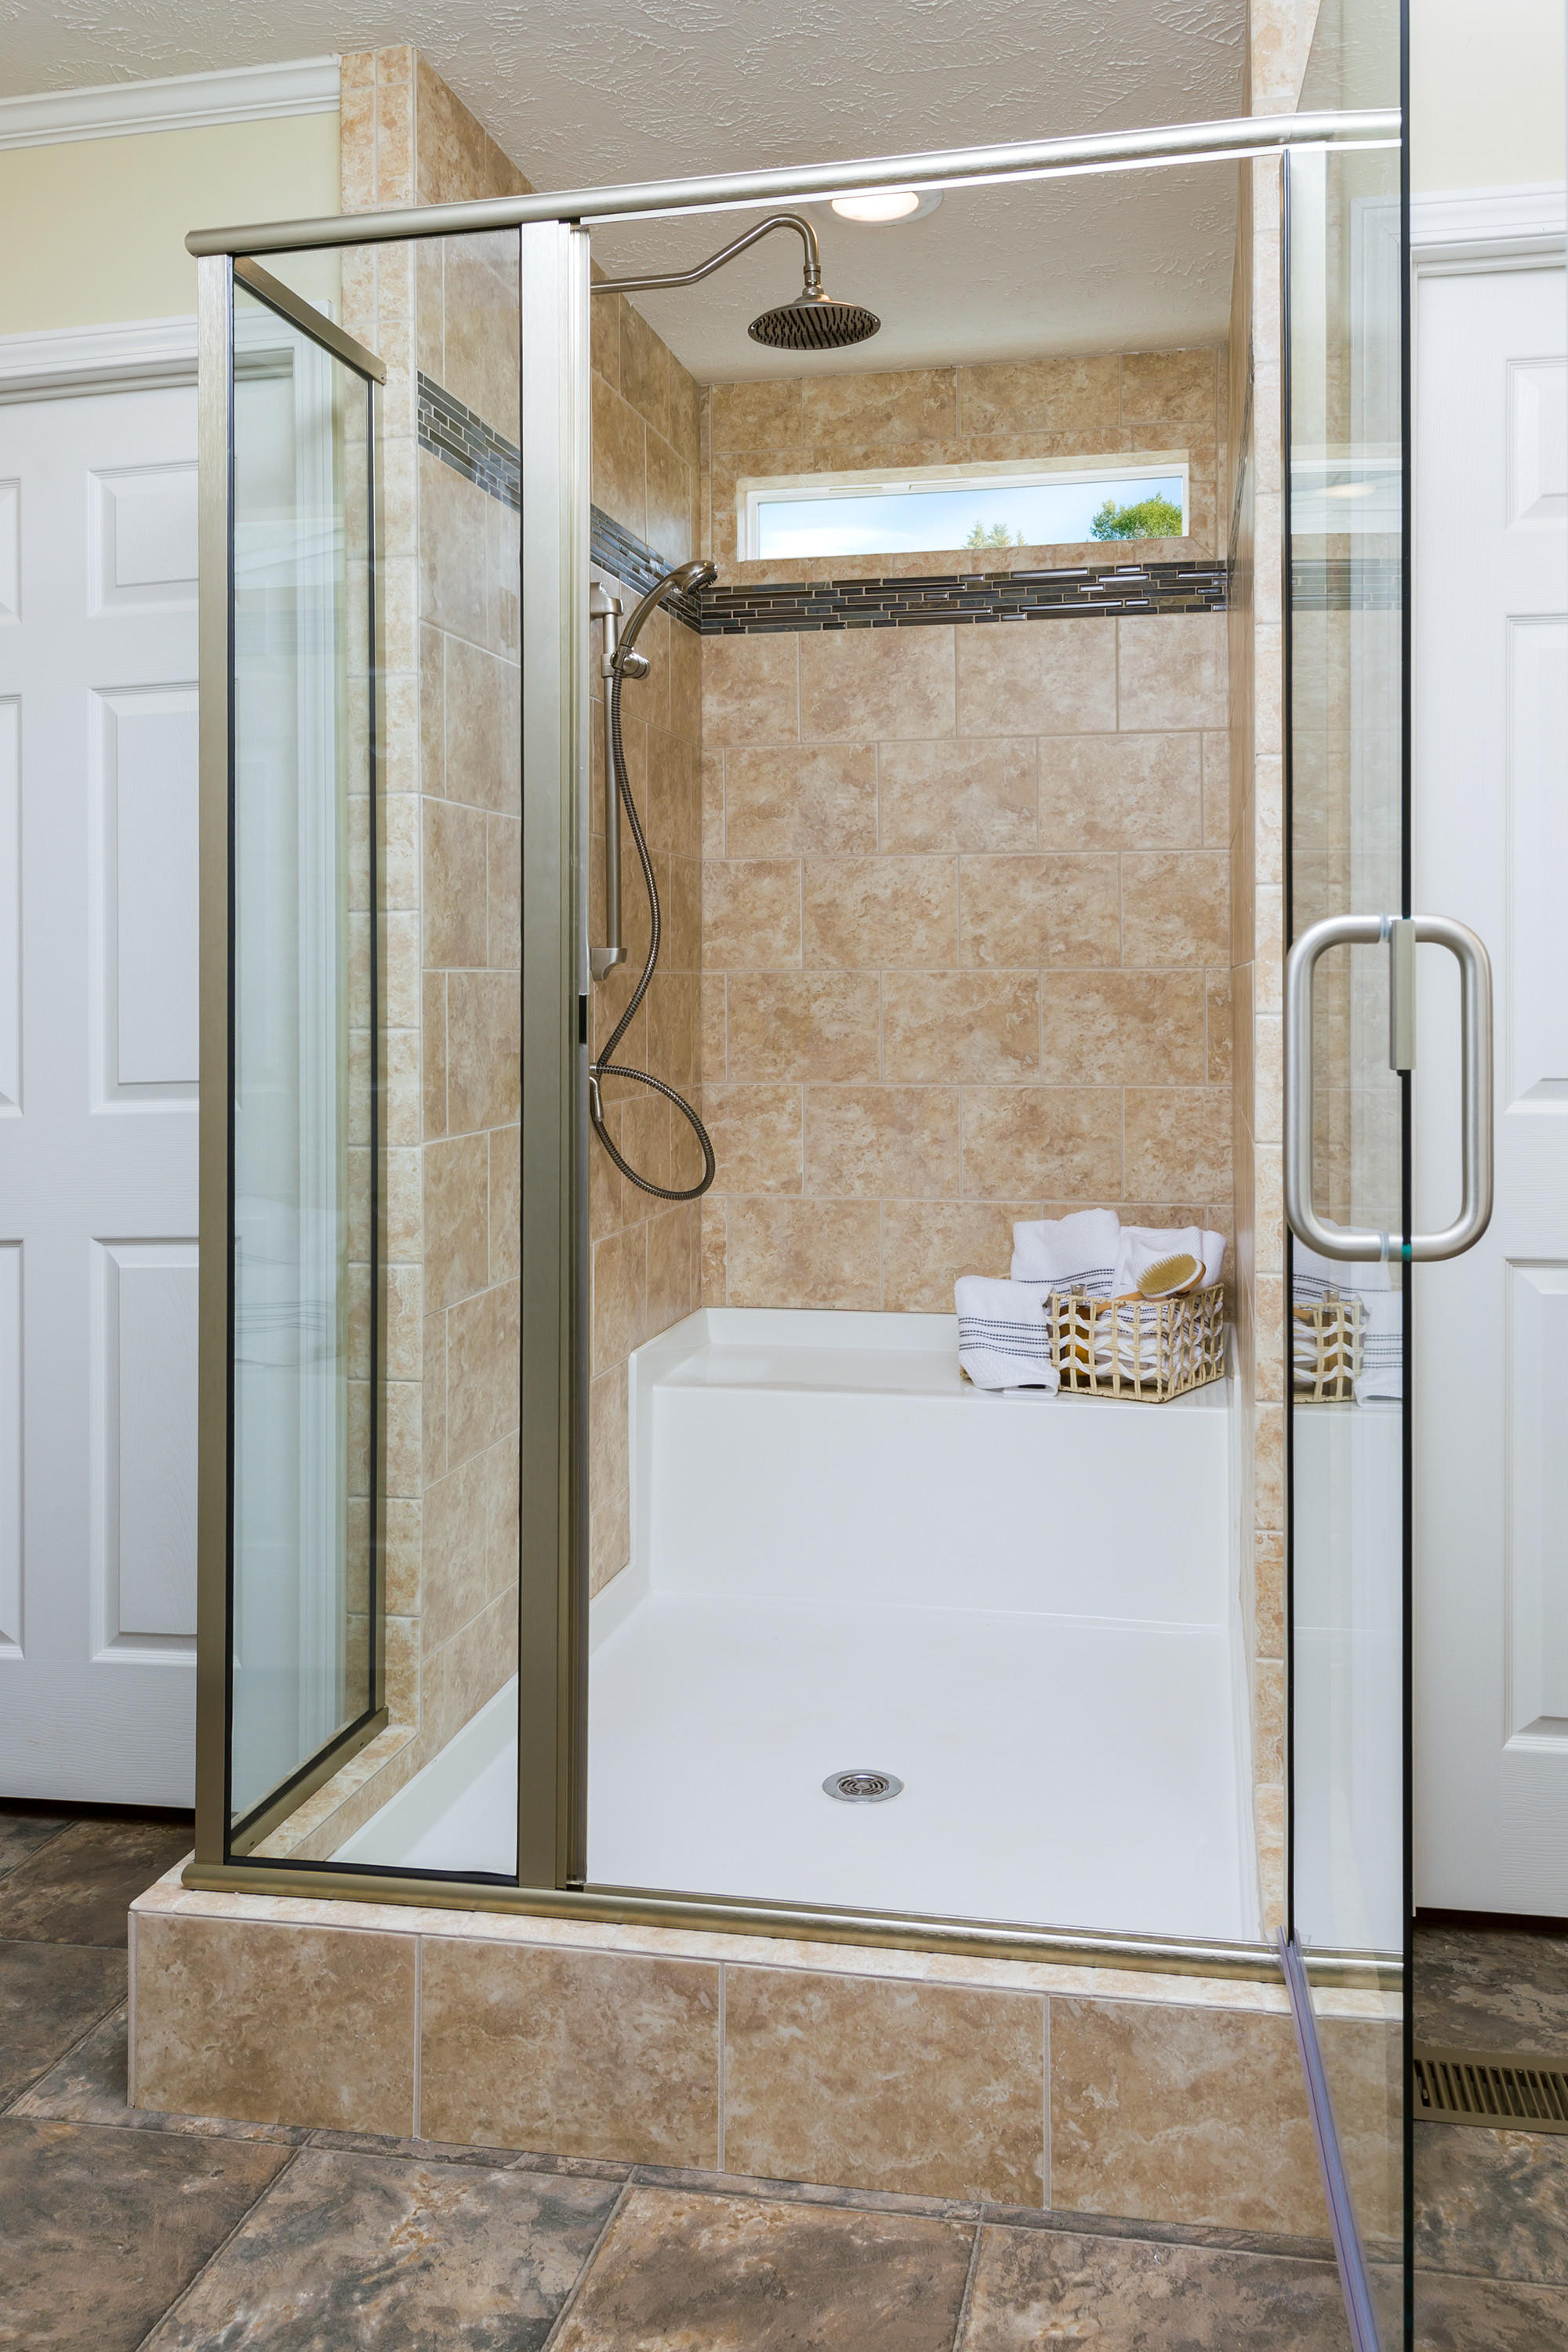 7 shower designs for your clayton bathroom clayton blog for Showers for mobile homes bathrooms